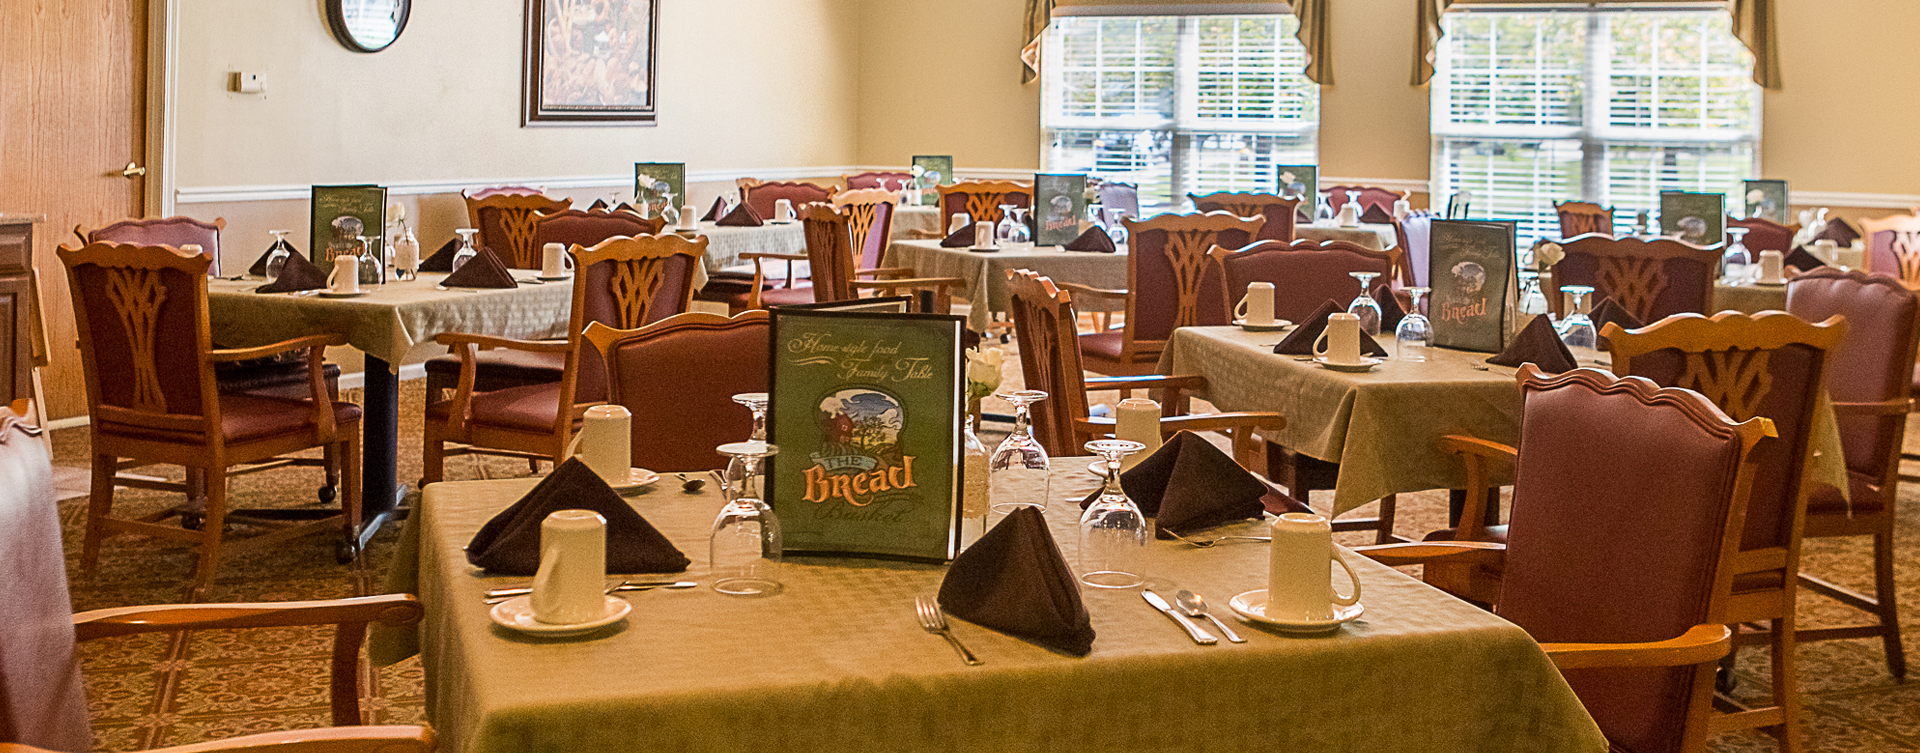 Enjoy restaurant -style meals served three times a day in our dining room at Bickford of Muscatine